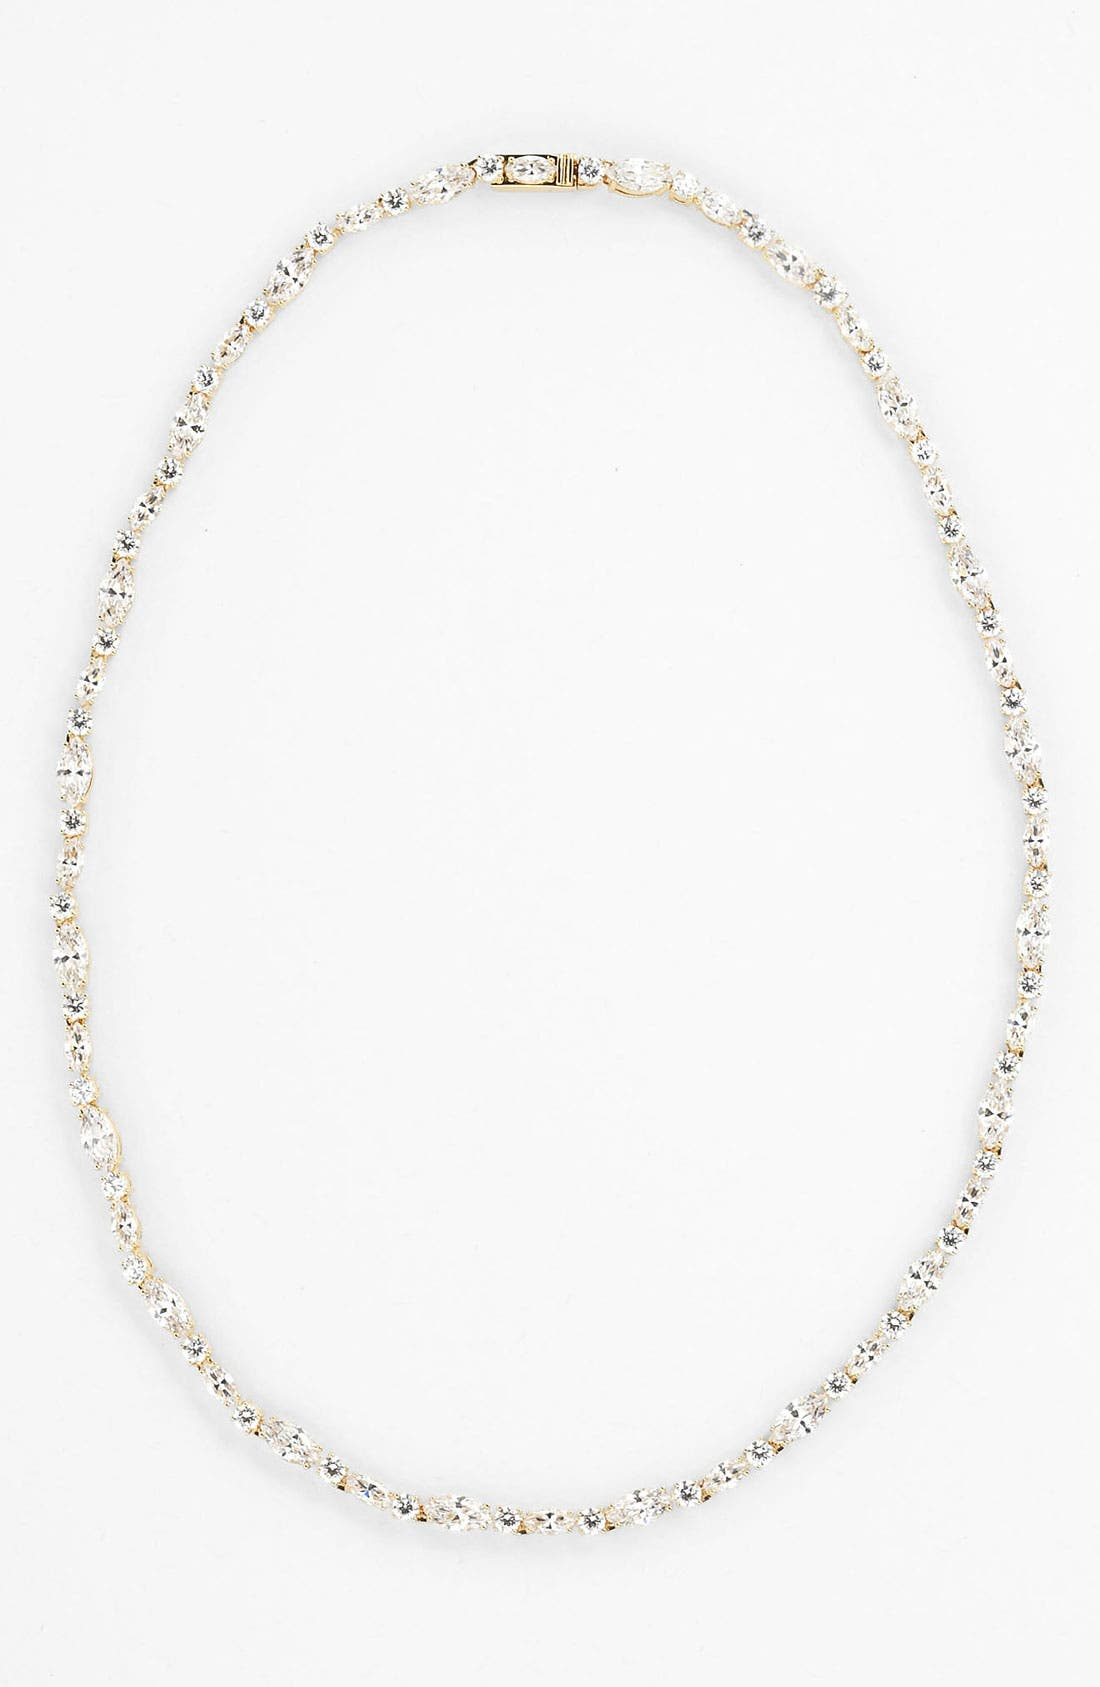 Main Image - Nadri Cubic Zirconia Cluster Collar Necklace (Nordstrom Exclusive)